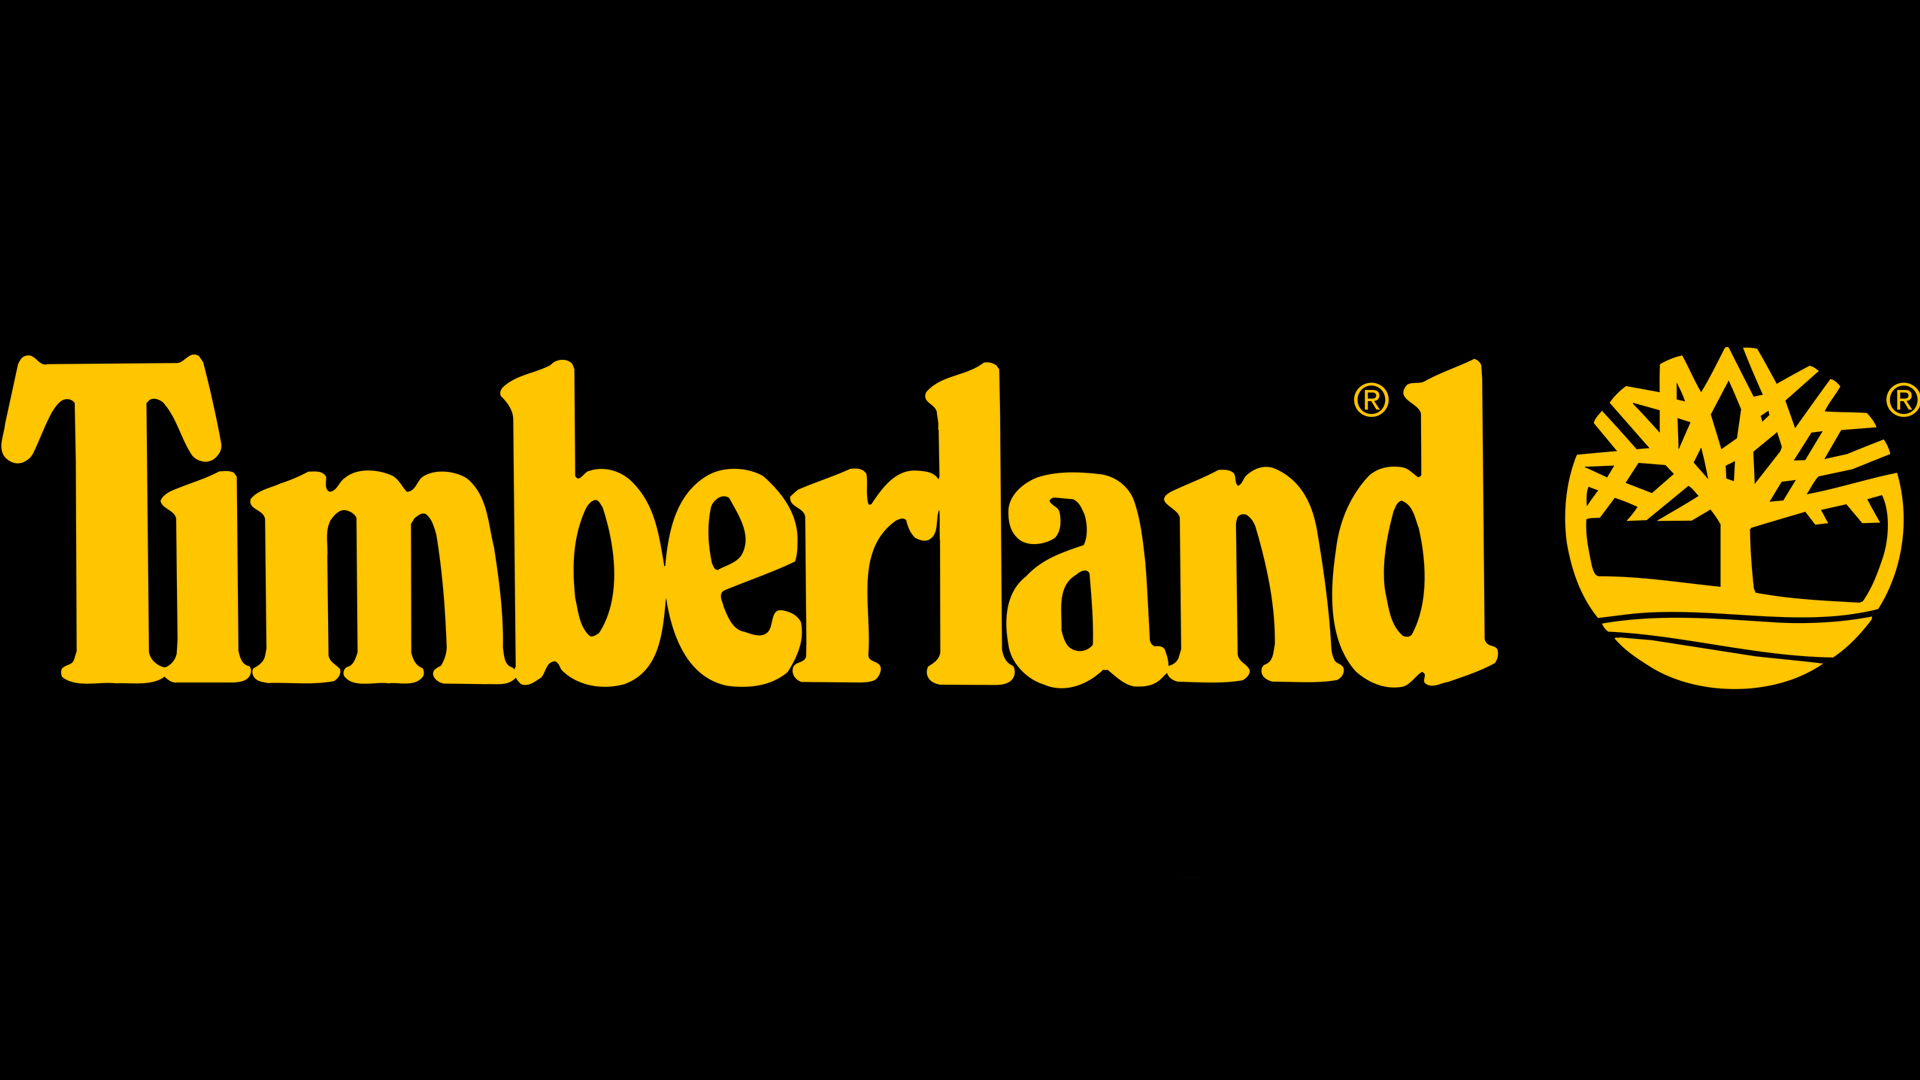 Meaning Timberland logo and symbol.